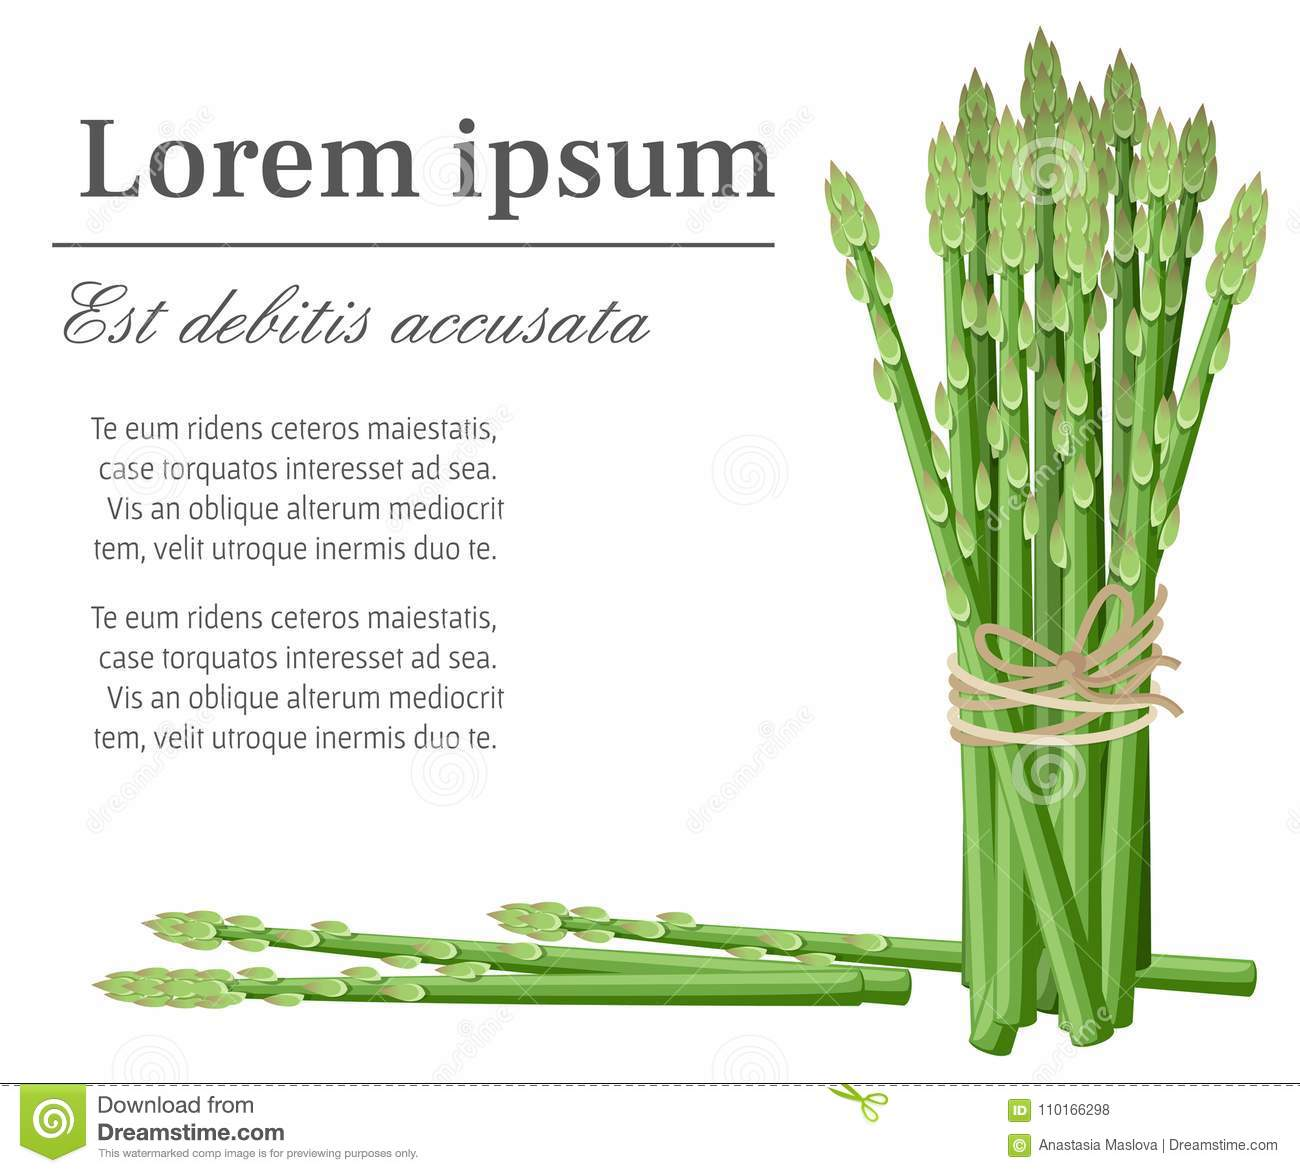 Wandposter Natur Asparagus Vegetable Plant Bunch Of Asparagus Stems Illustration